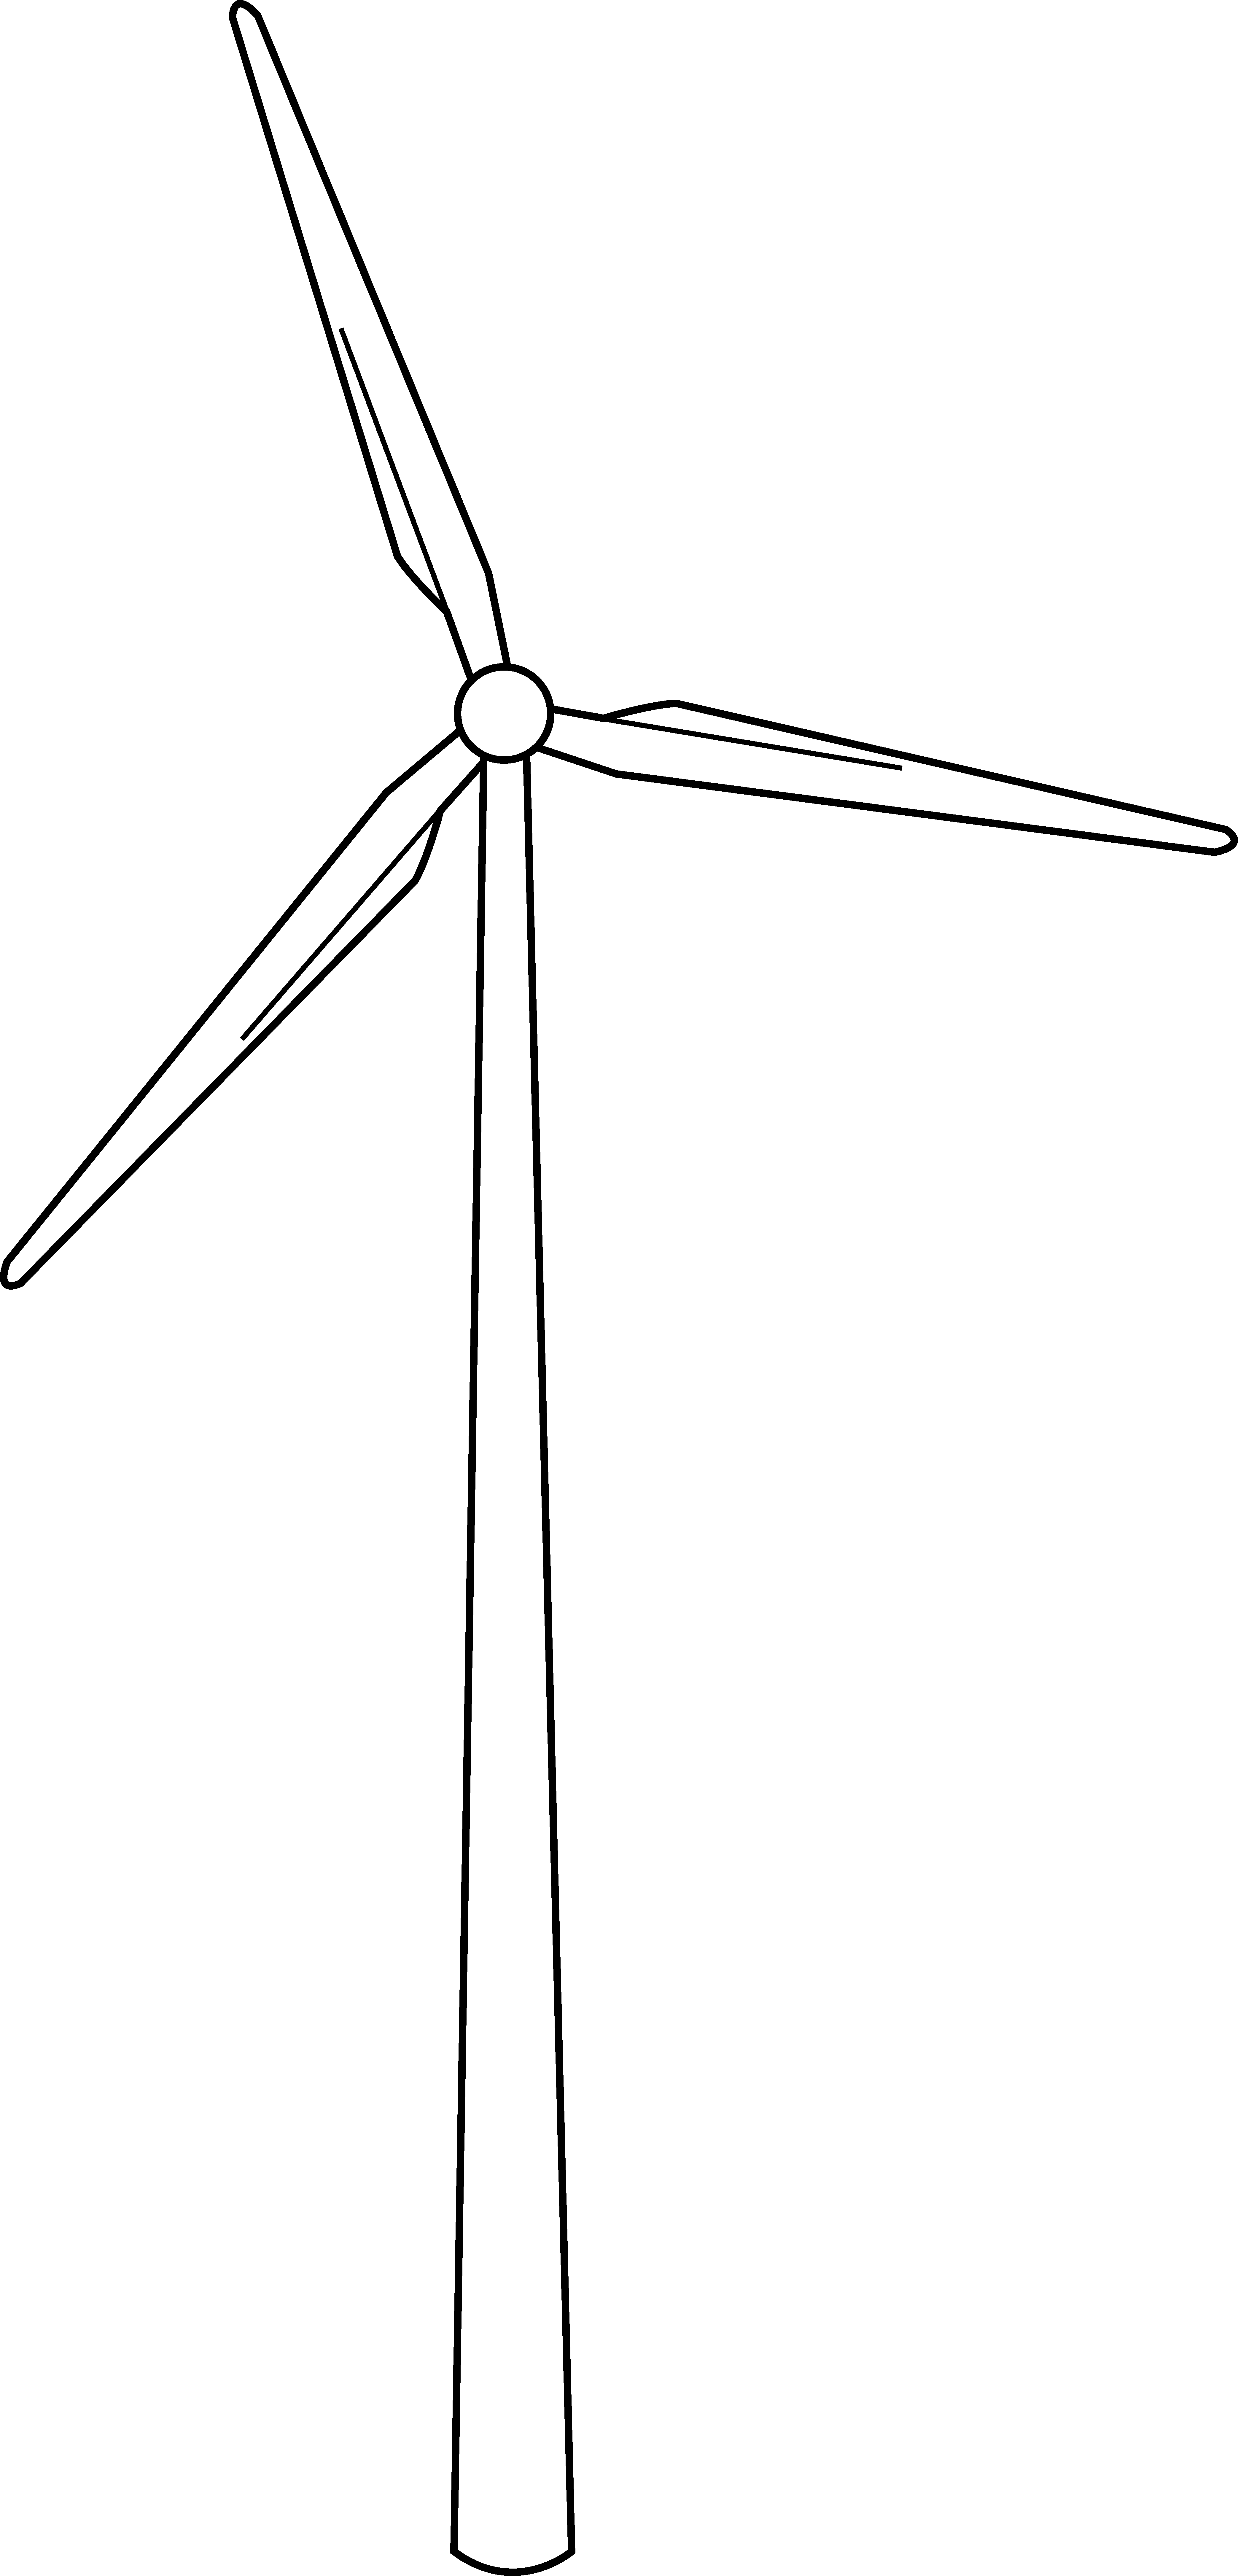 Wind energy clipart 5 » Clipart Station.